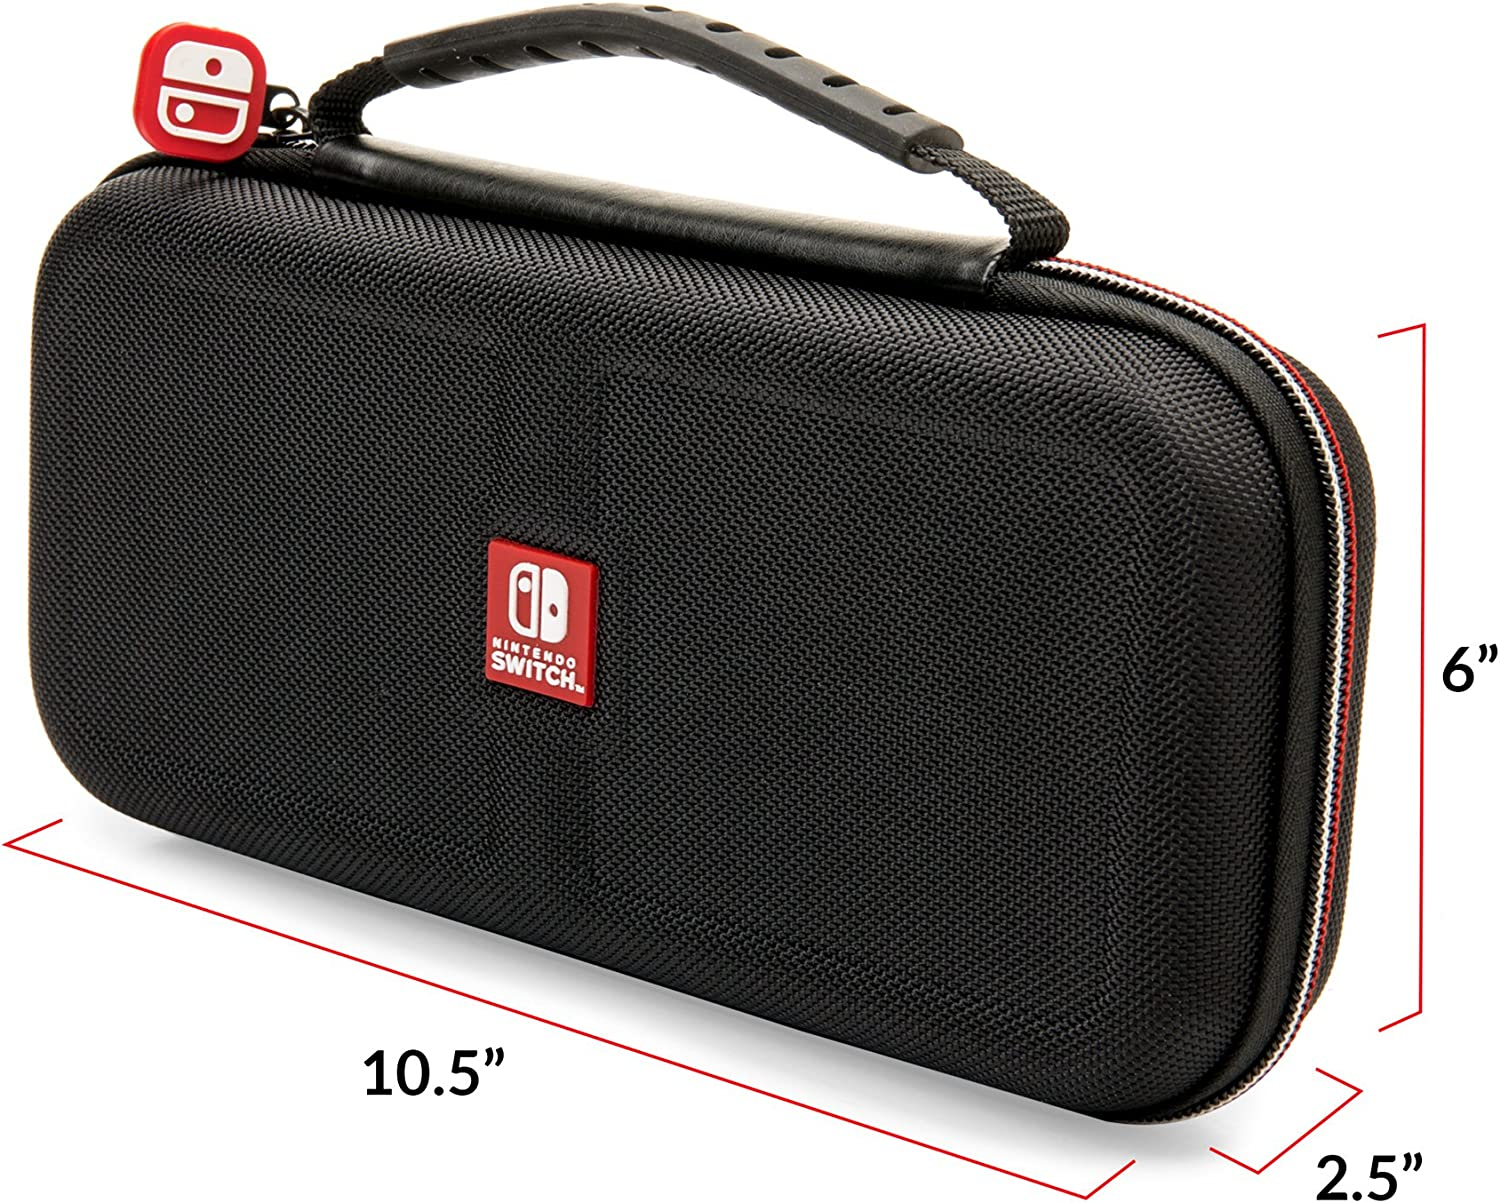 Amazon.com: Nintendo Switch Carrying Case – Protective ...